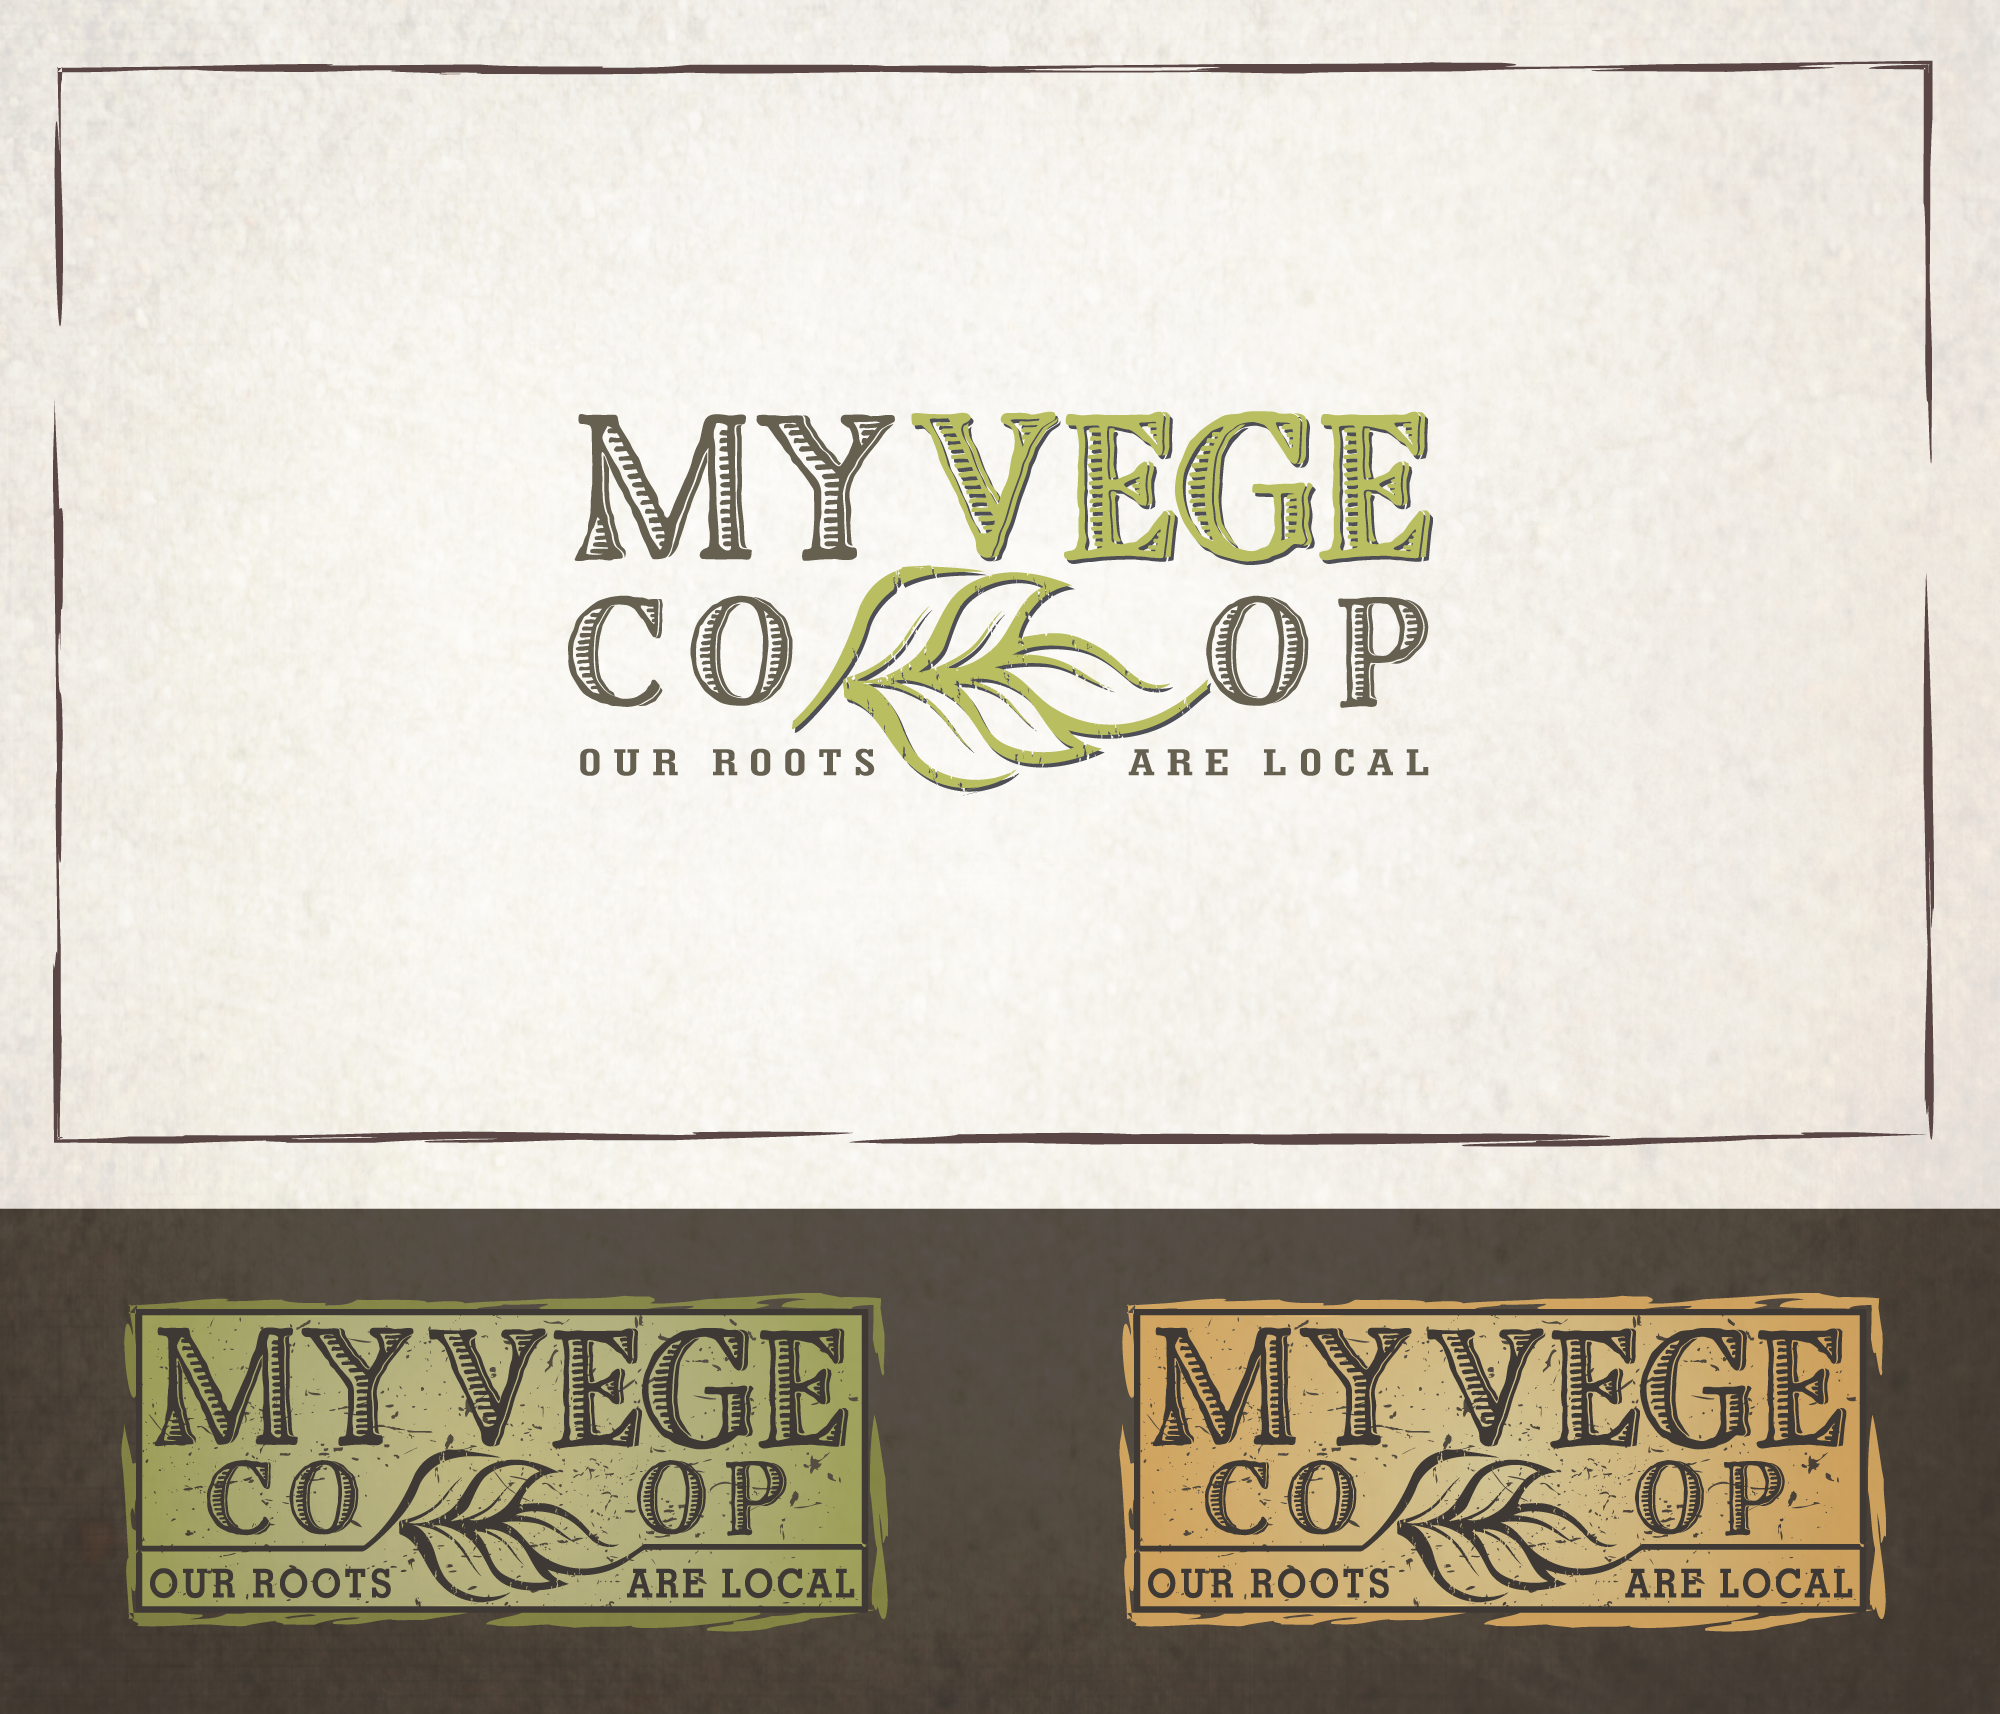 Create an edgy logo for a community based food start up